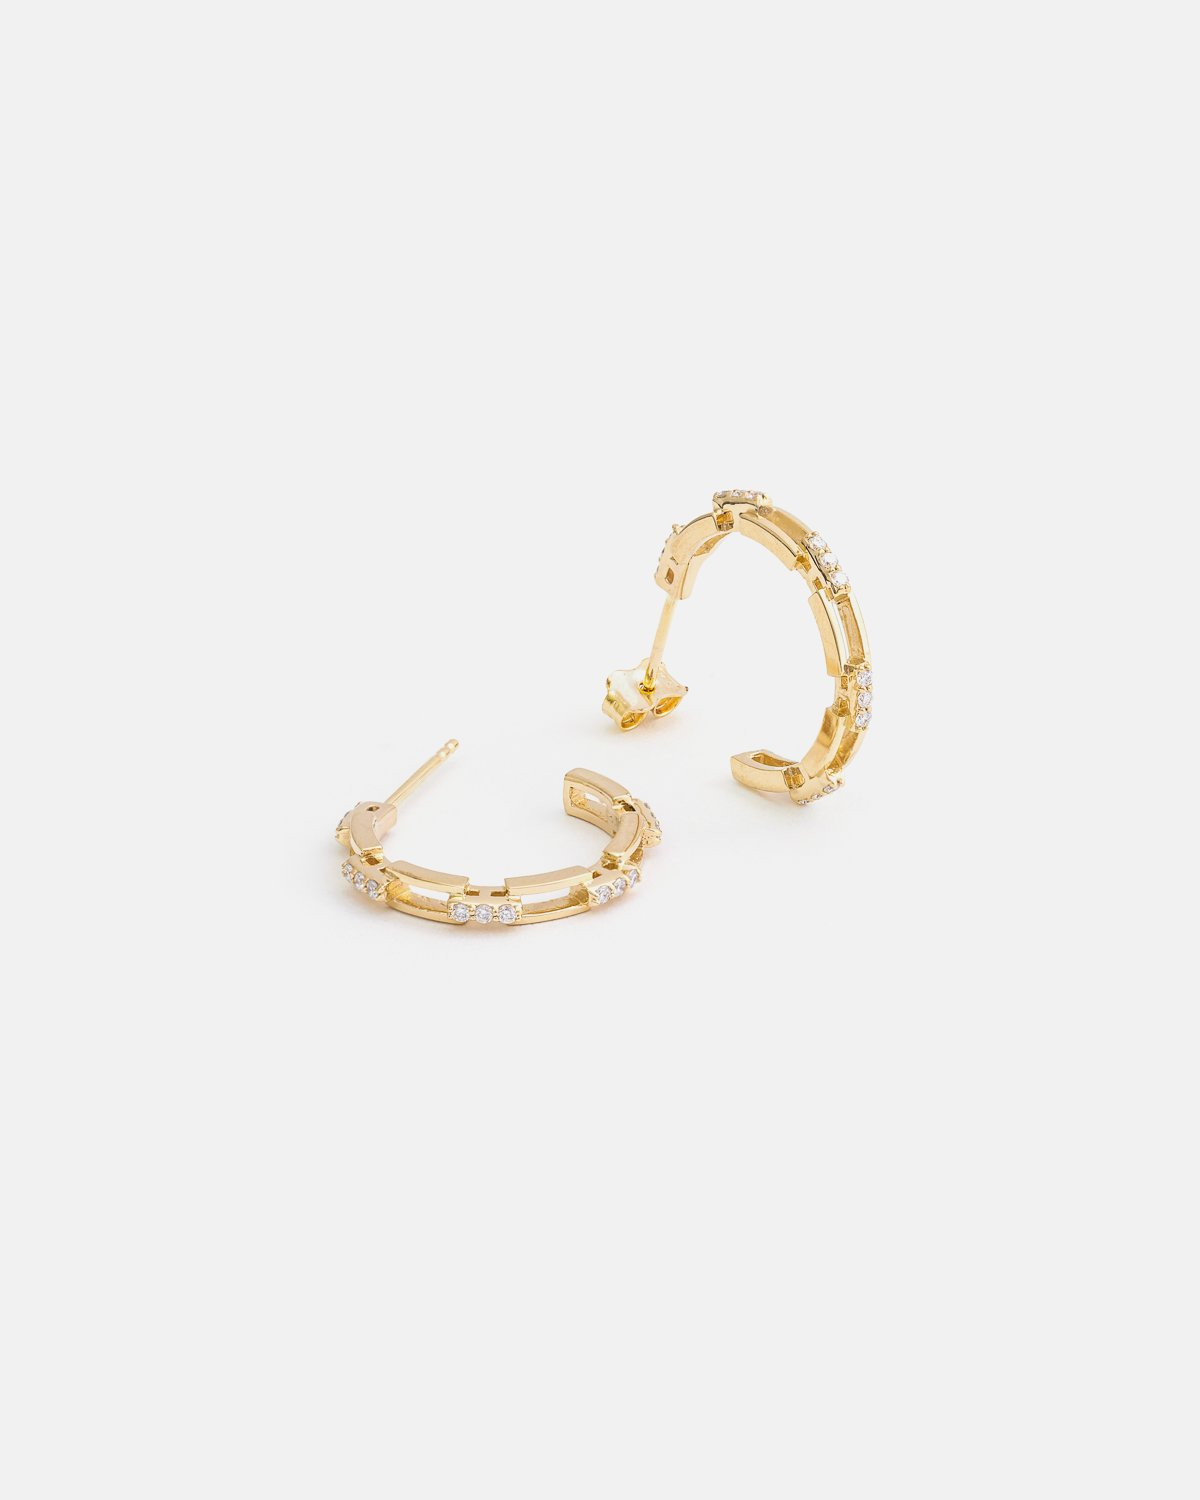 Liaisons Hoops in Yellow Gold with Diamonds